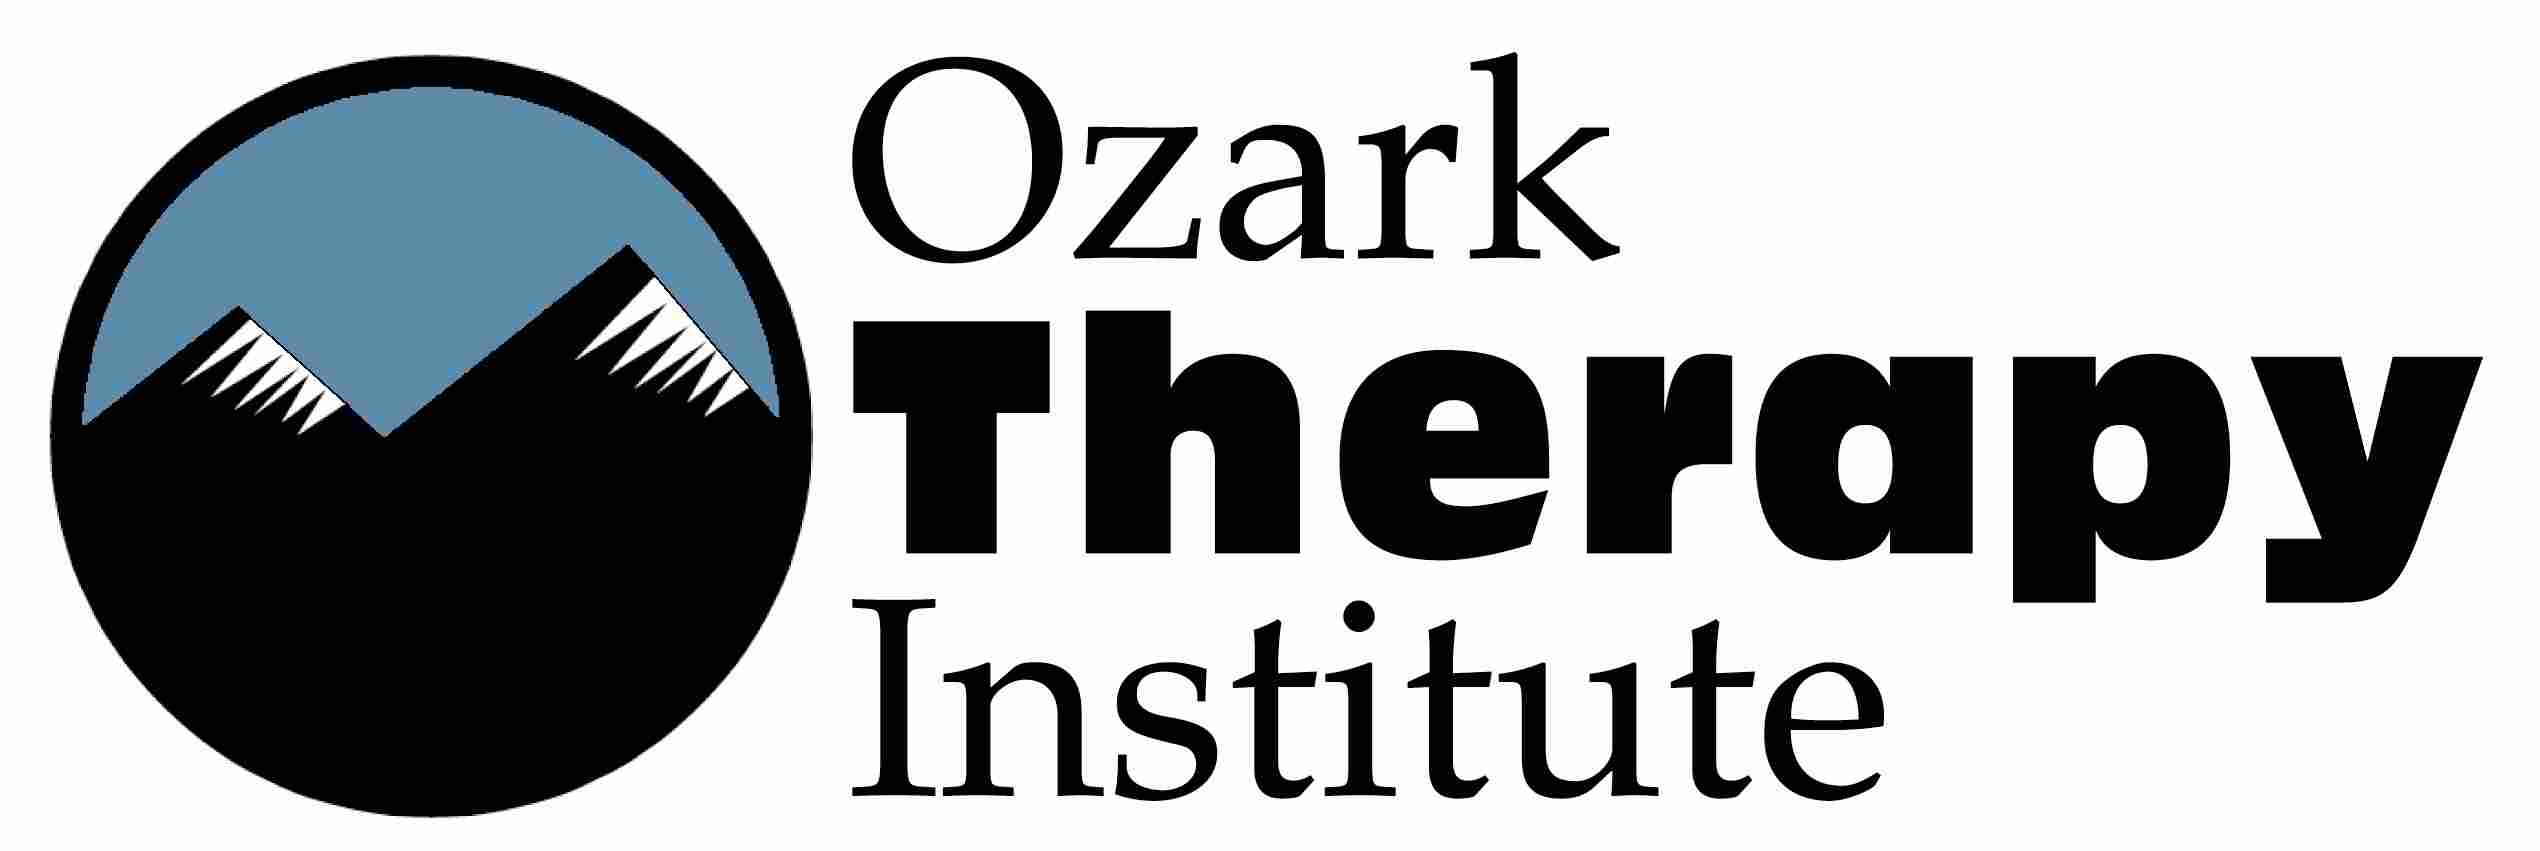 Ozark Therapy